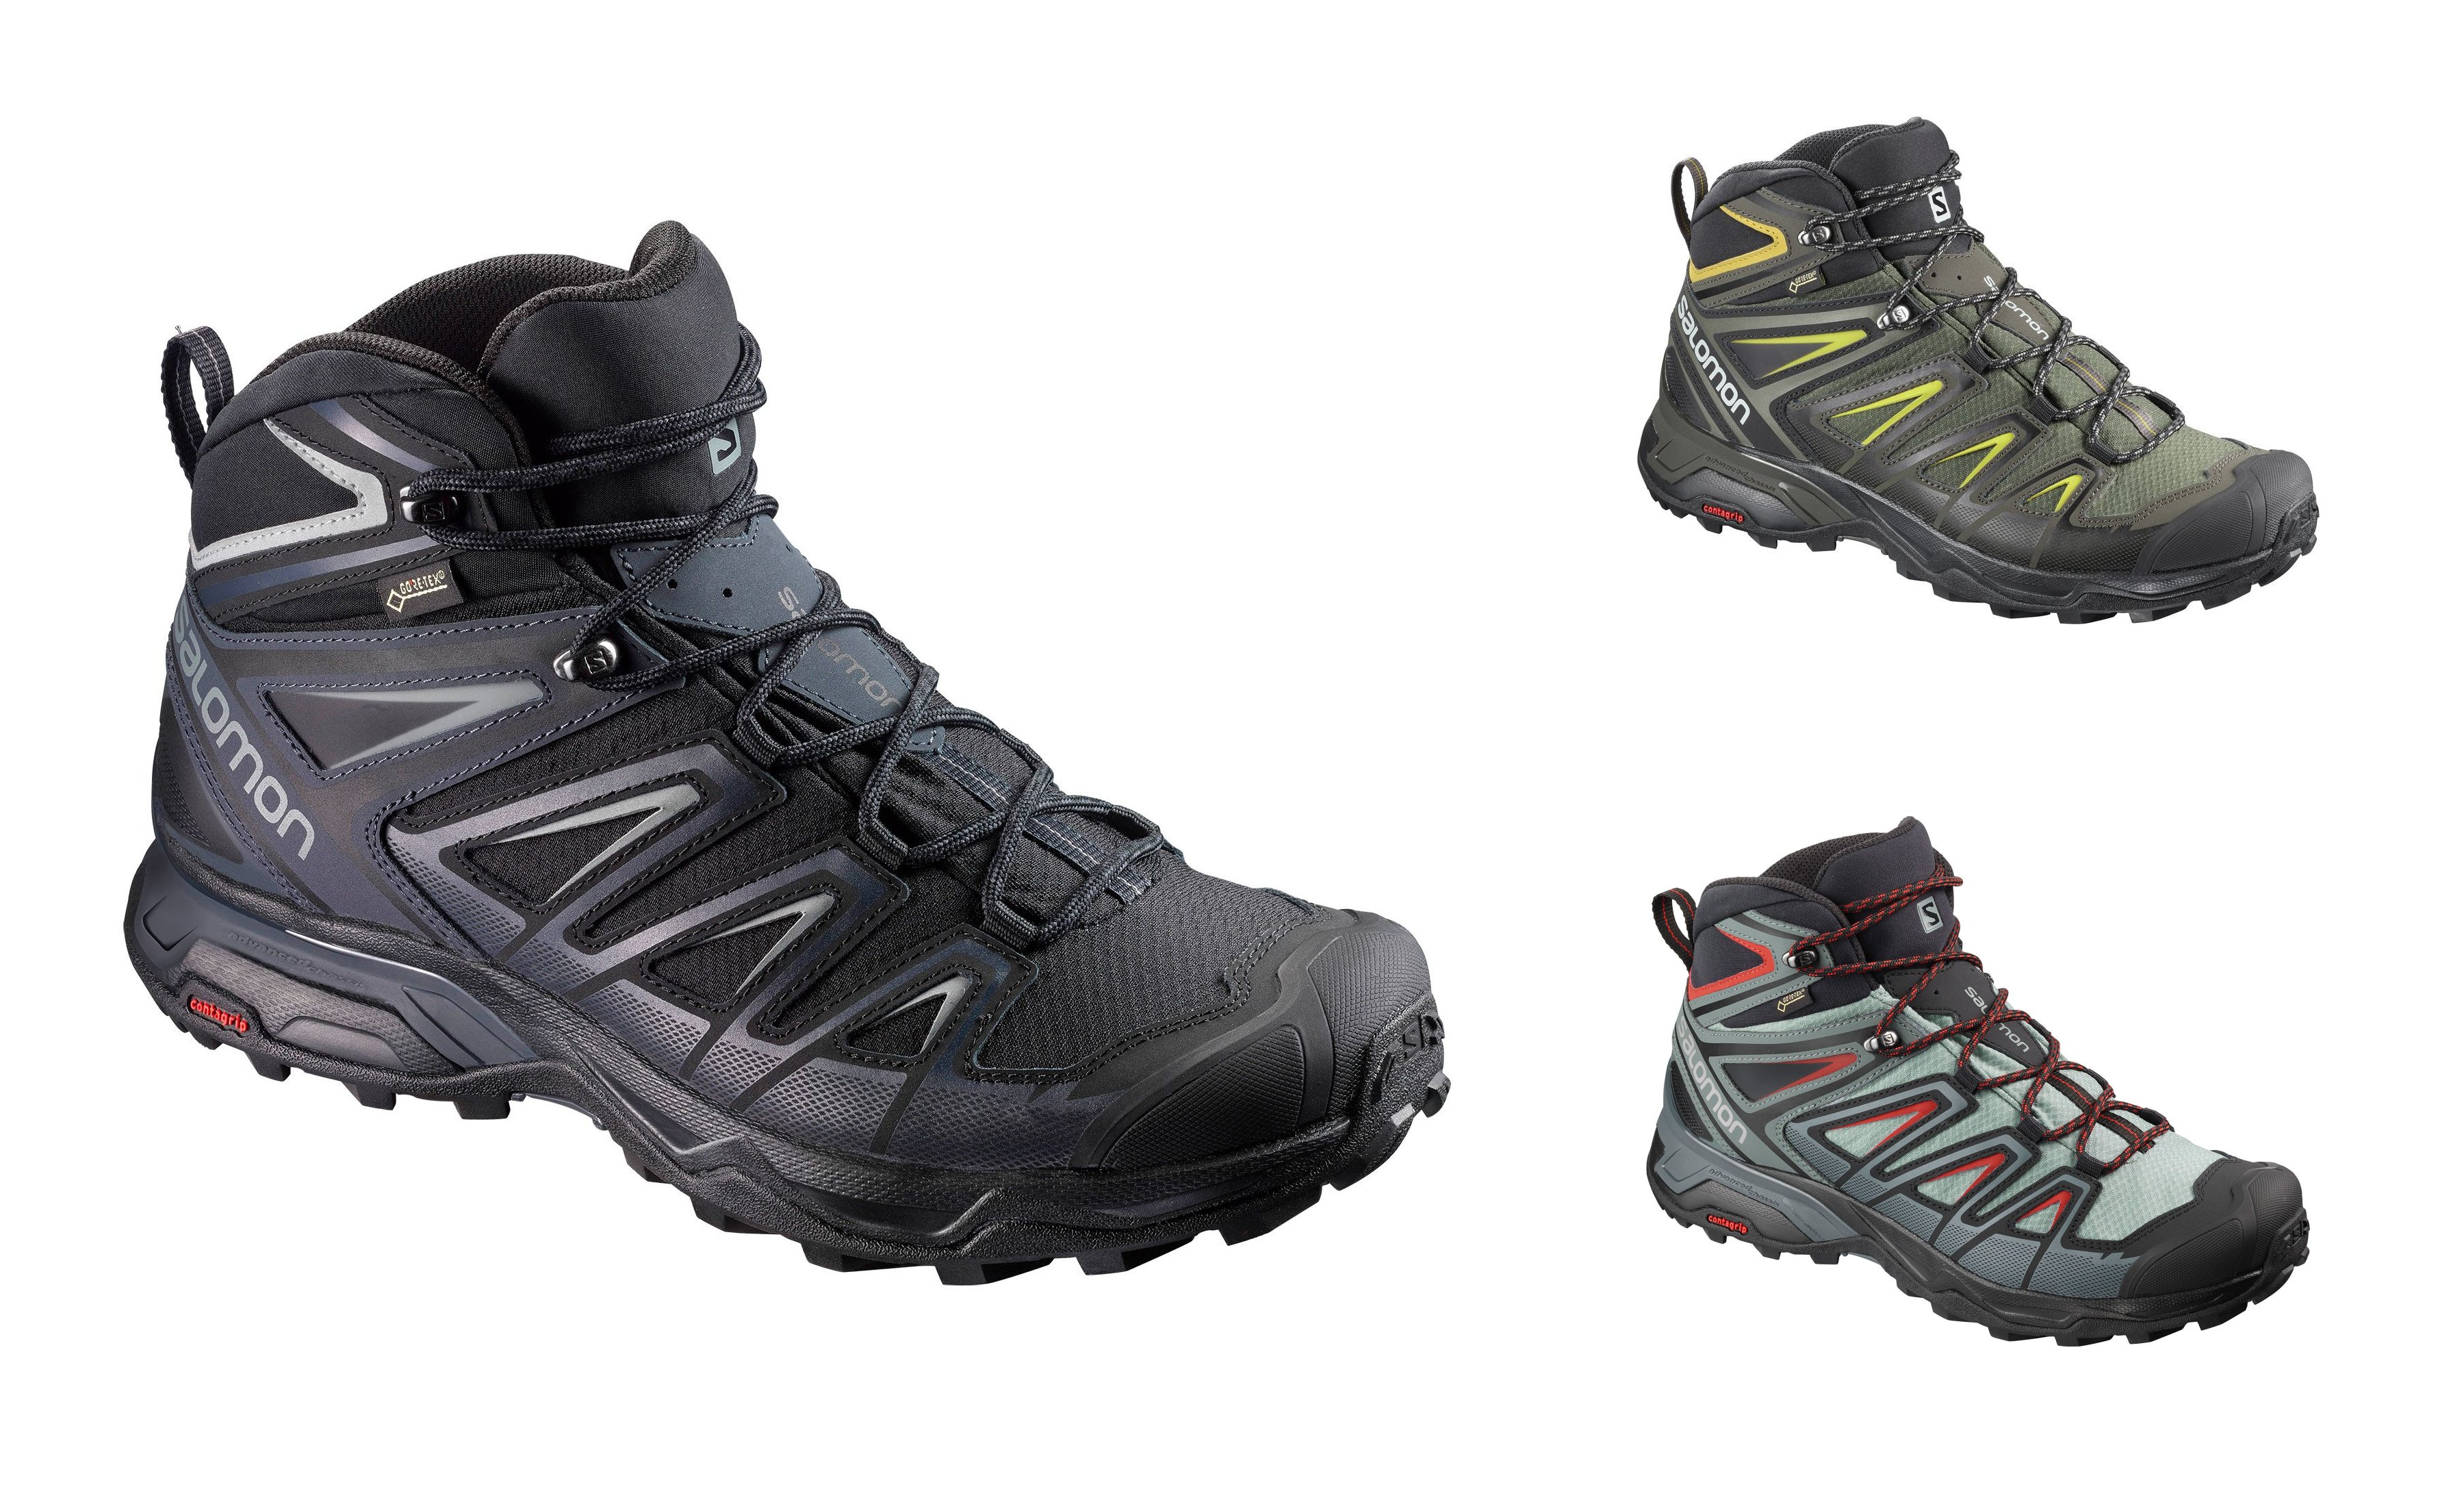 salomon women's x ultra 3 gtx hiking shoes Sale,up to 33